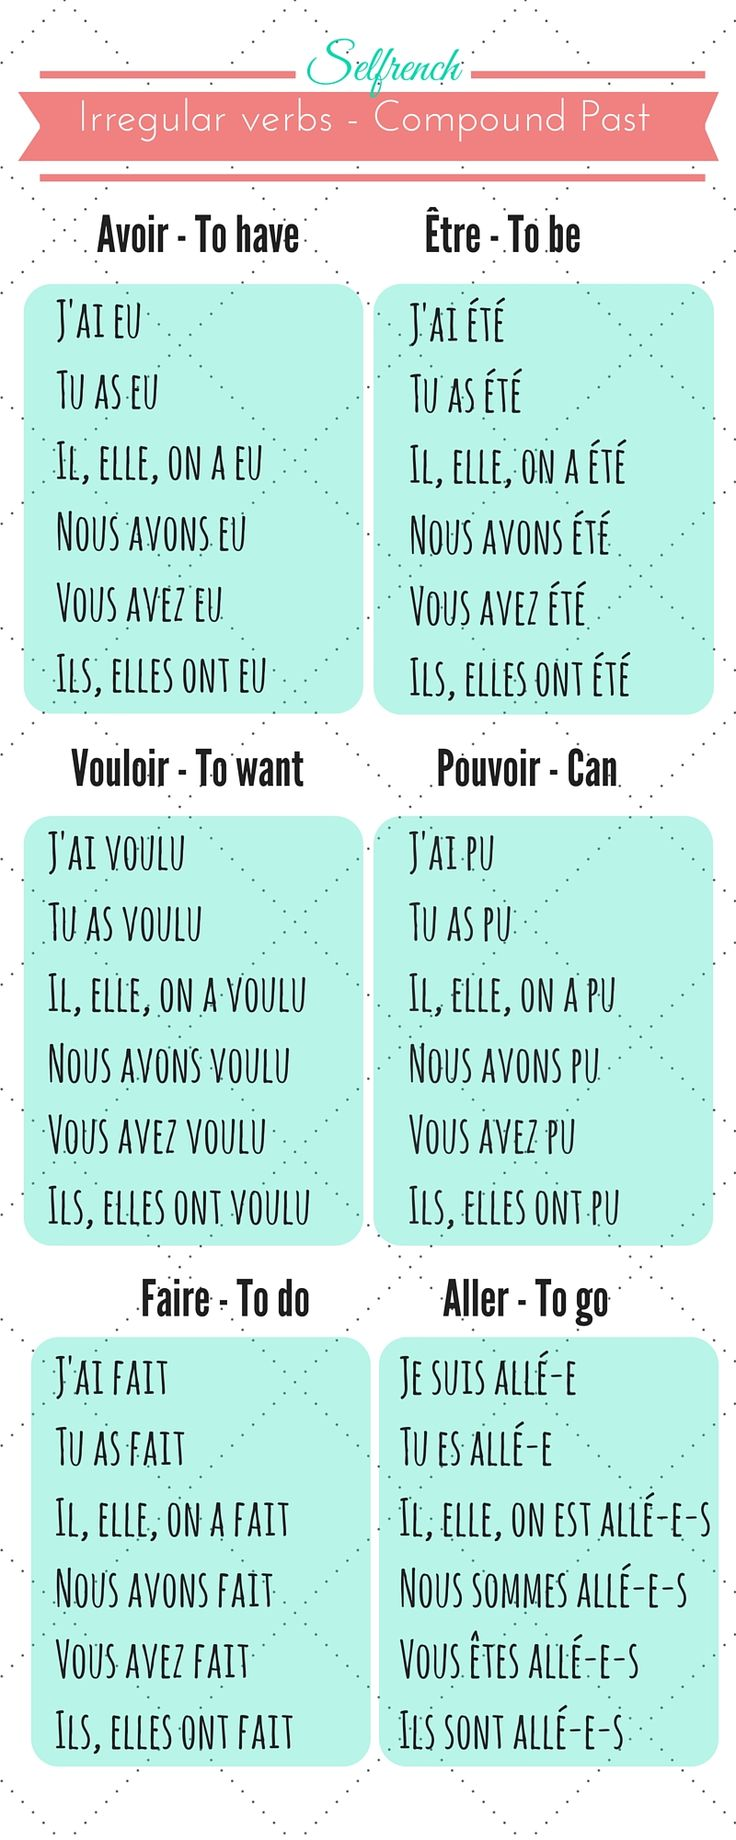 French conjugation compound past. Learn French online Selfrench free programs…